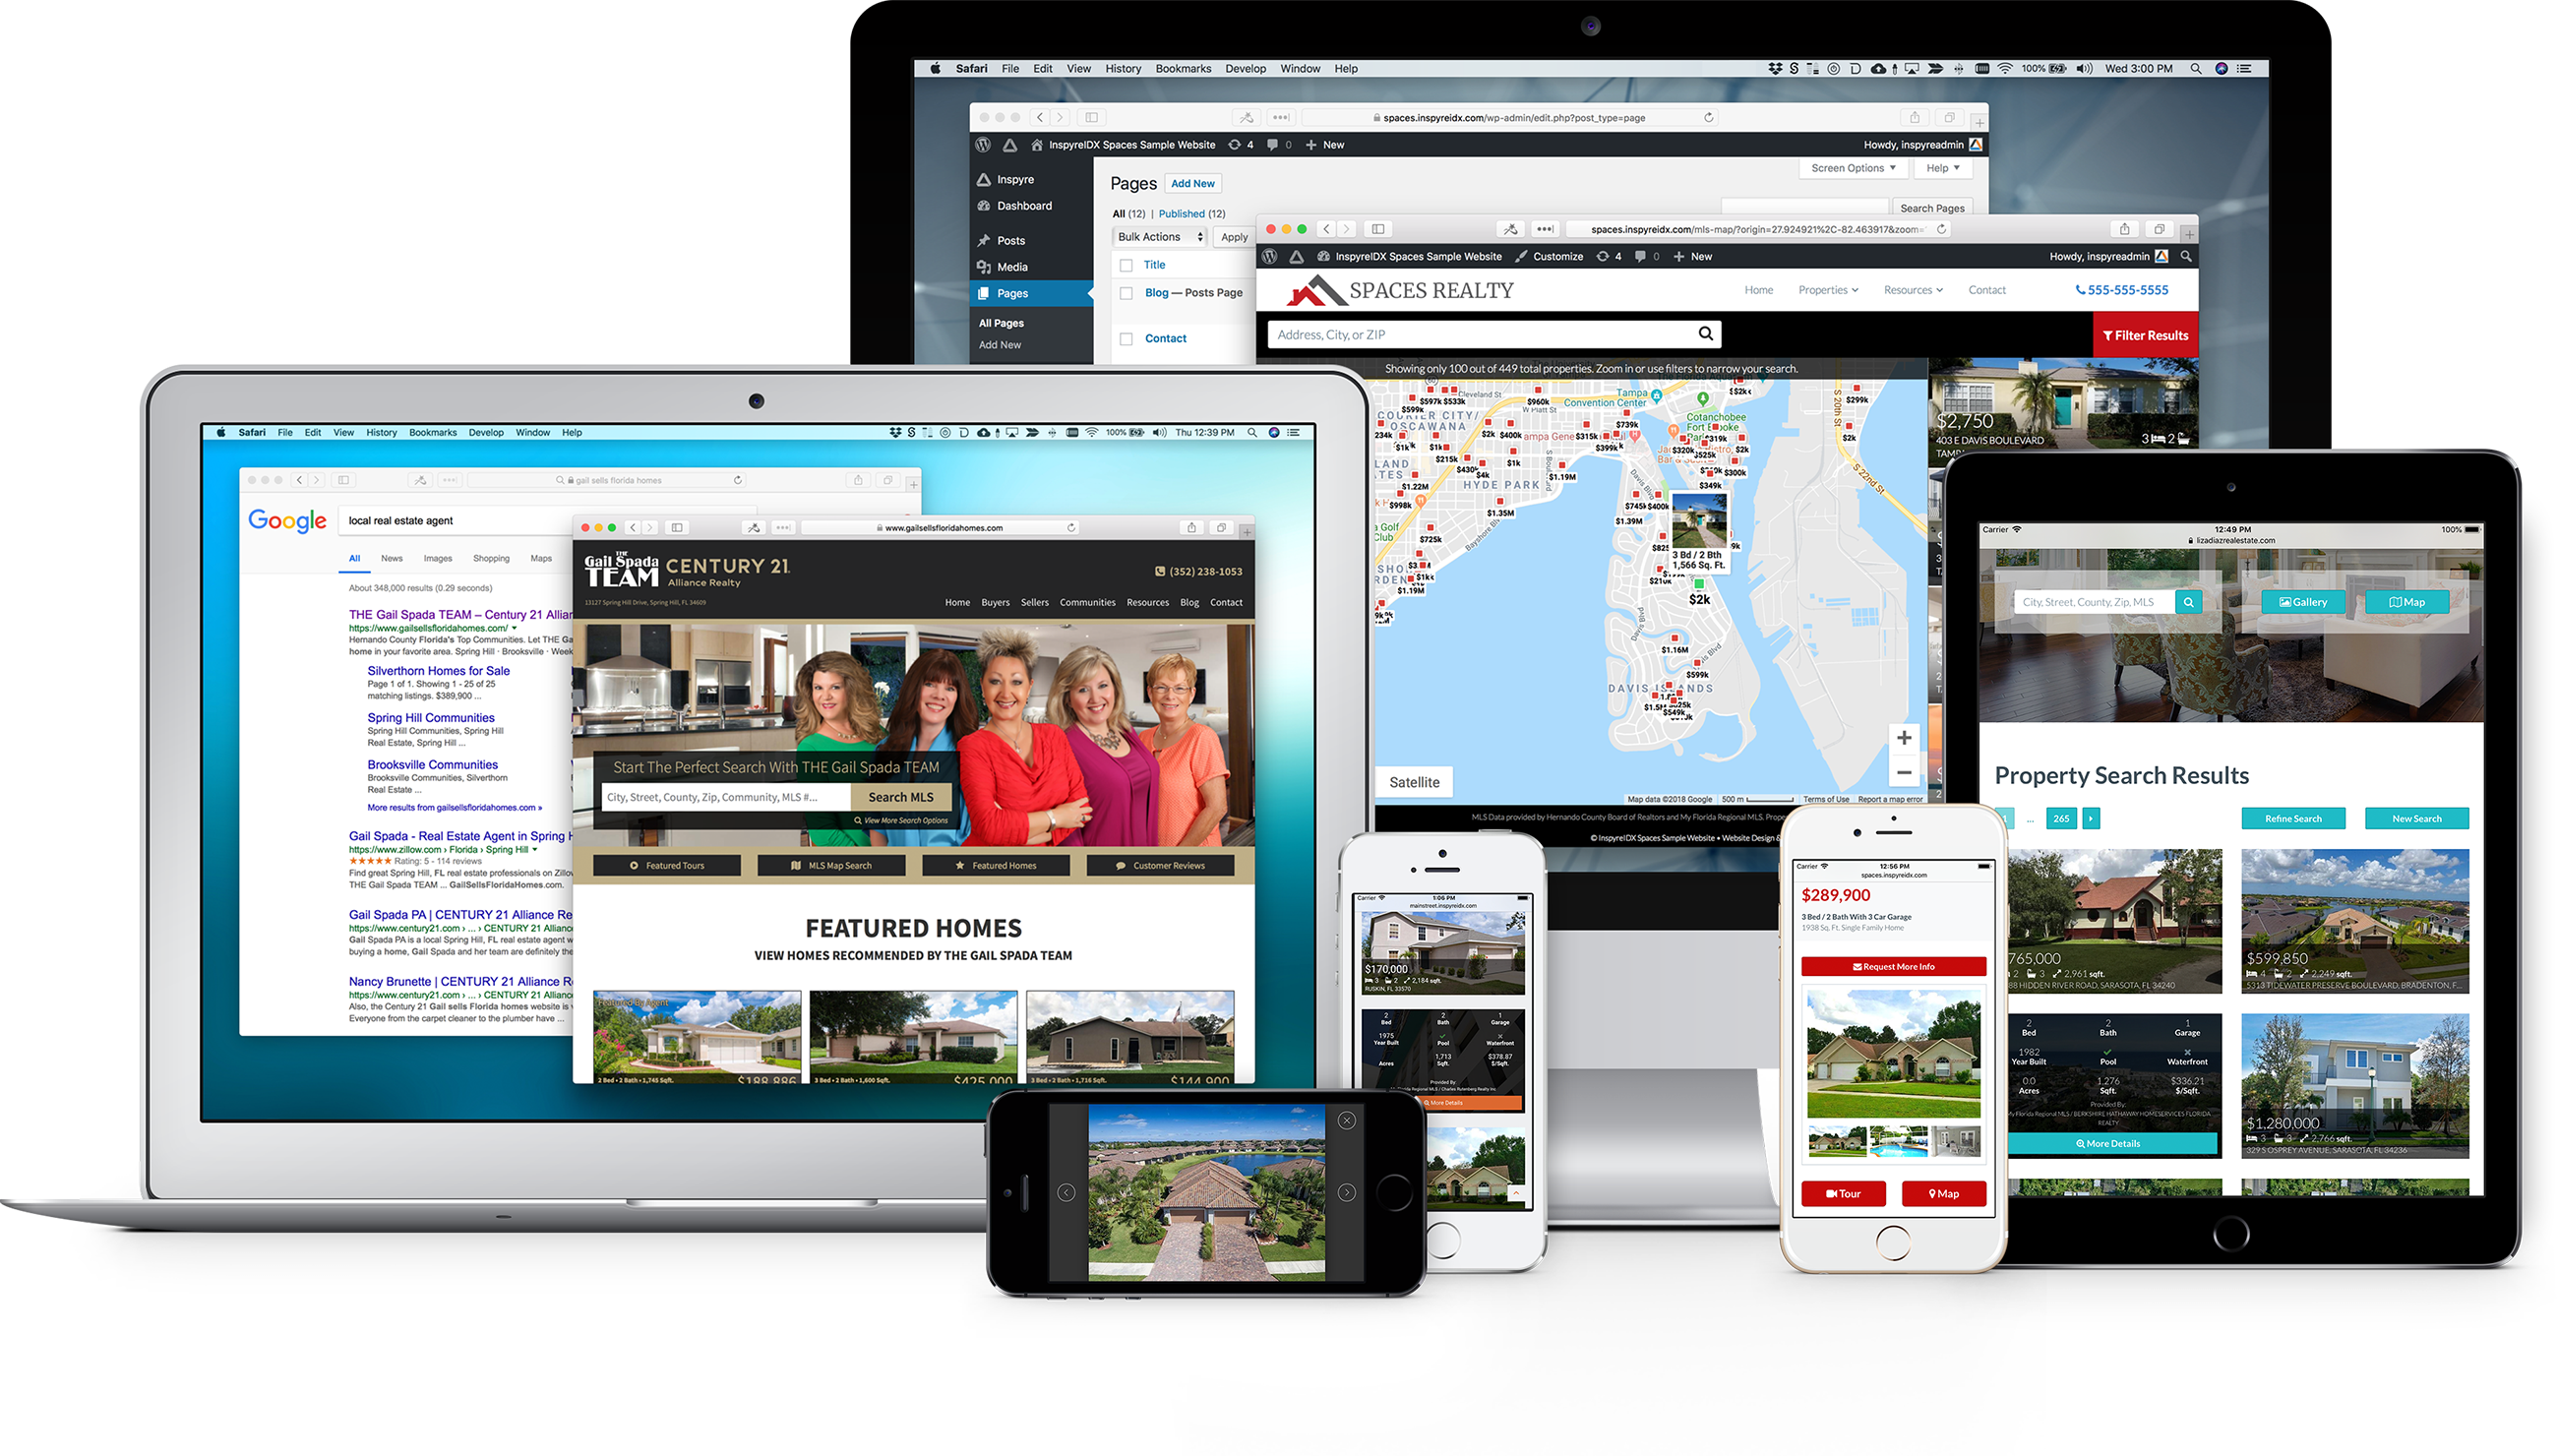 Modern responsive real estate IDX website design and effective marketing solutions for Realtors, real estate agents, teams, and brokers.